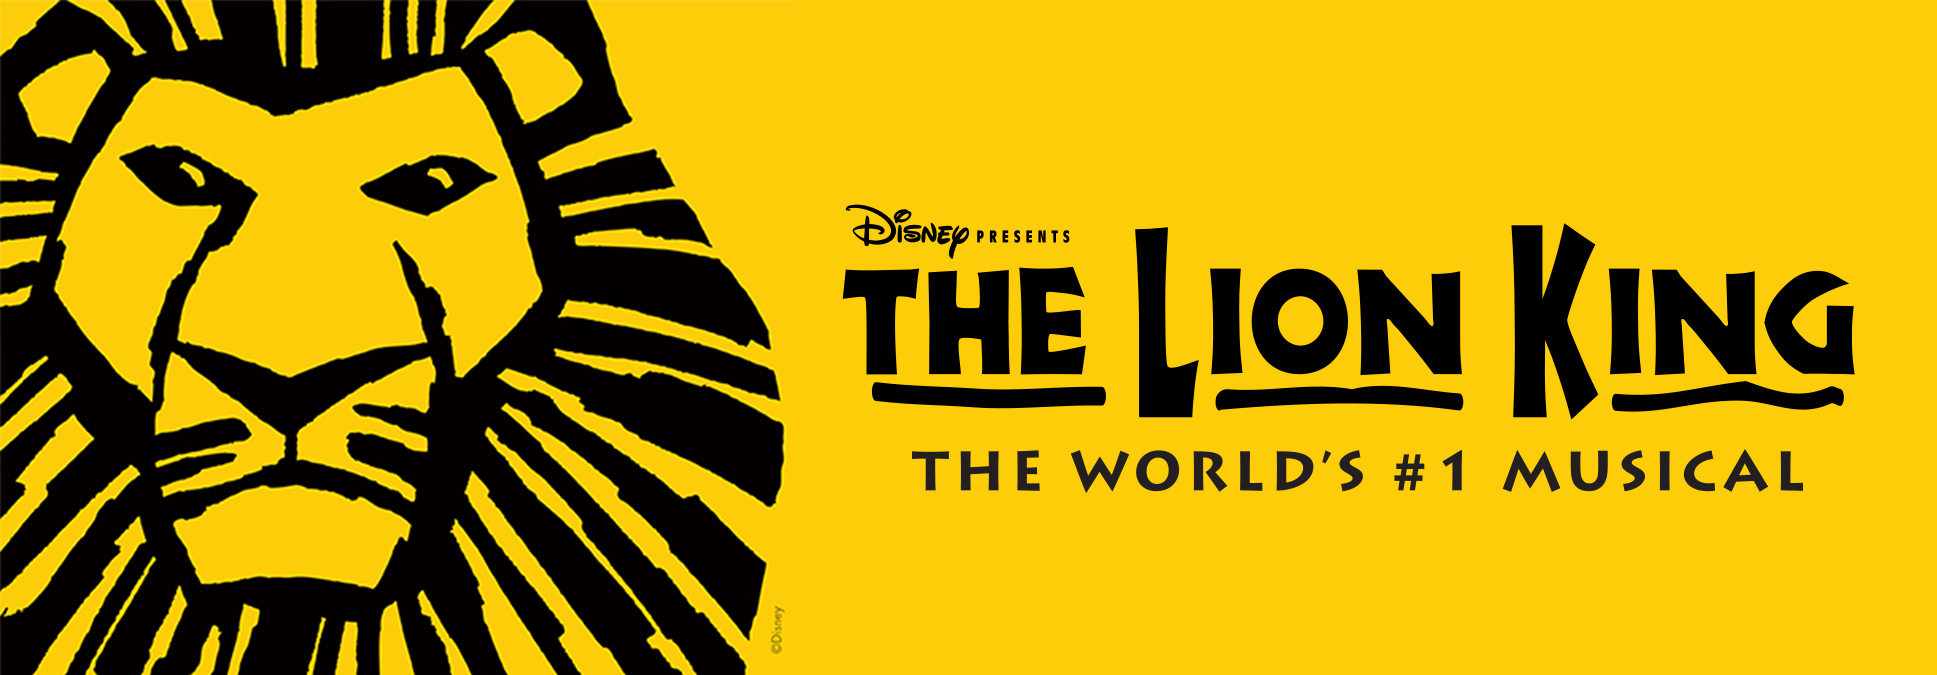 Disney's The Lion King in Milwaukee at the Marcus Center